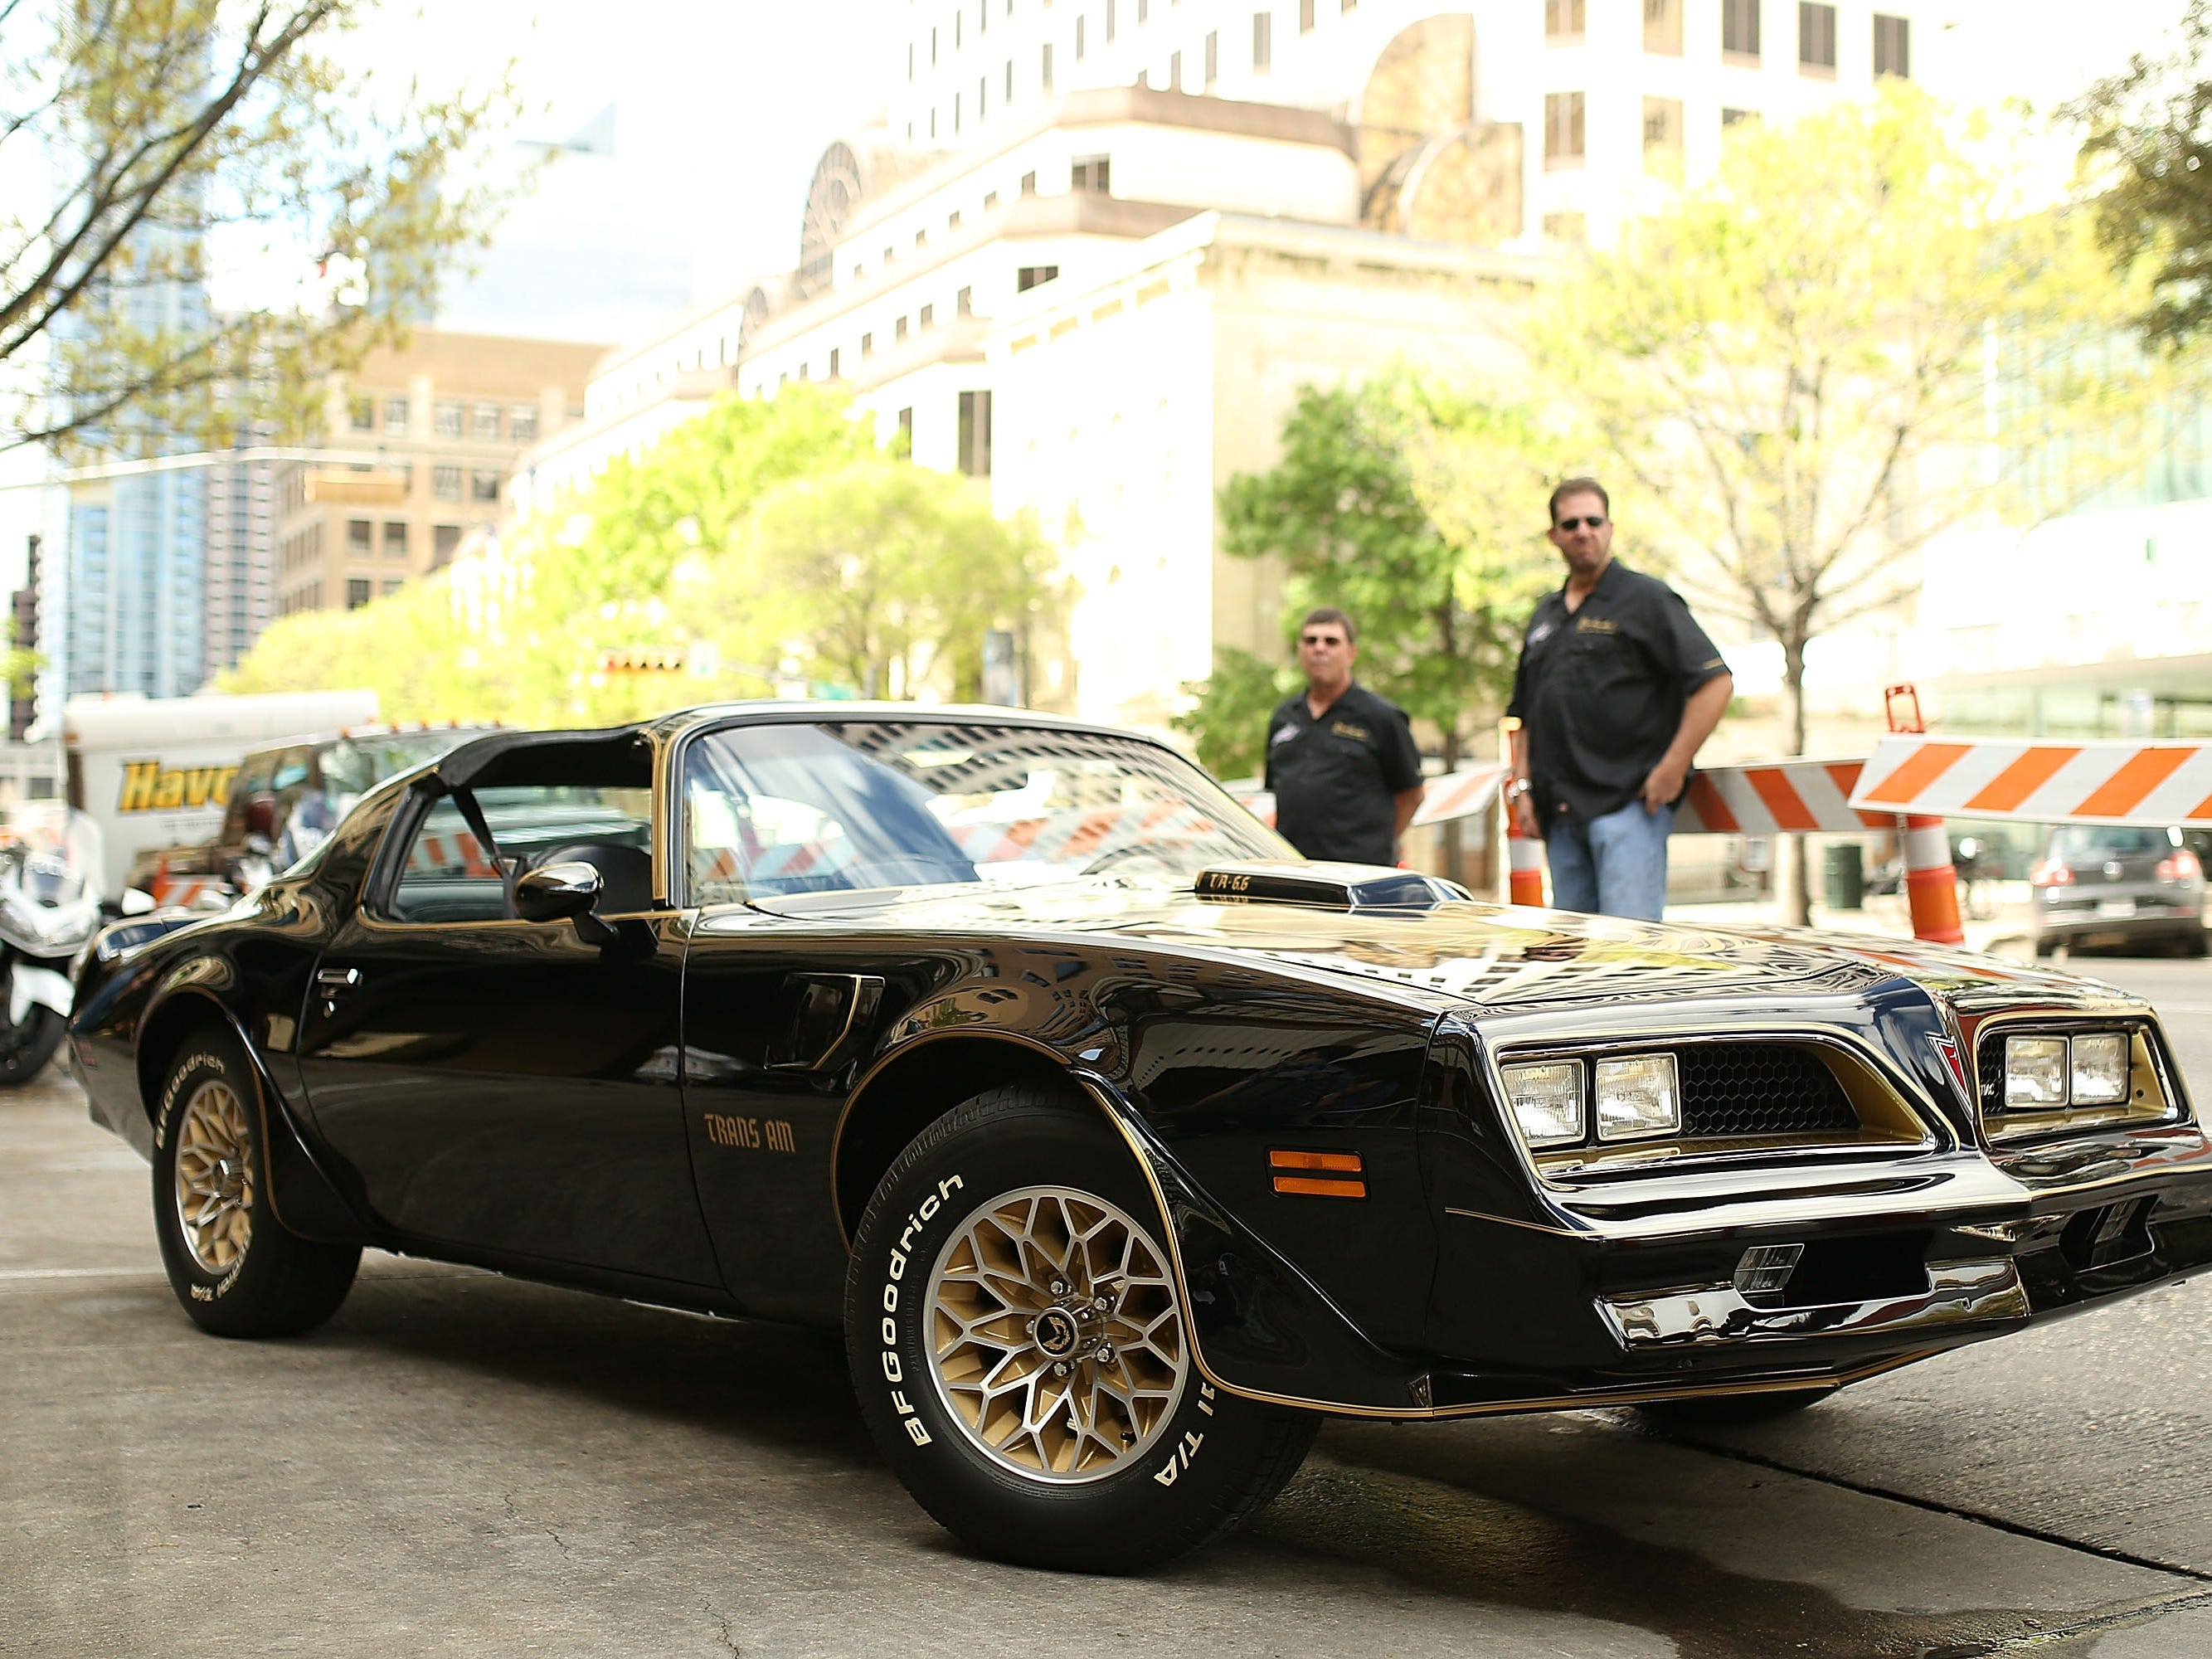 """AUSTIN, TX - MARCH 12:  The 1977 Pontiac Trans-Am from the TV show """"Smokey and The Bandit"""" is displayed during the screening of """"The Bandit"""" during the 2016 SXSW Music, Film + Interactive Festival at Paramount Theatre on March 12, 2016 in Austin, Texas.  (Photo by Mike Windle/Getty Images for SXSW)"""